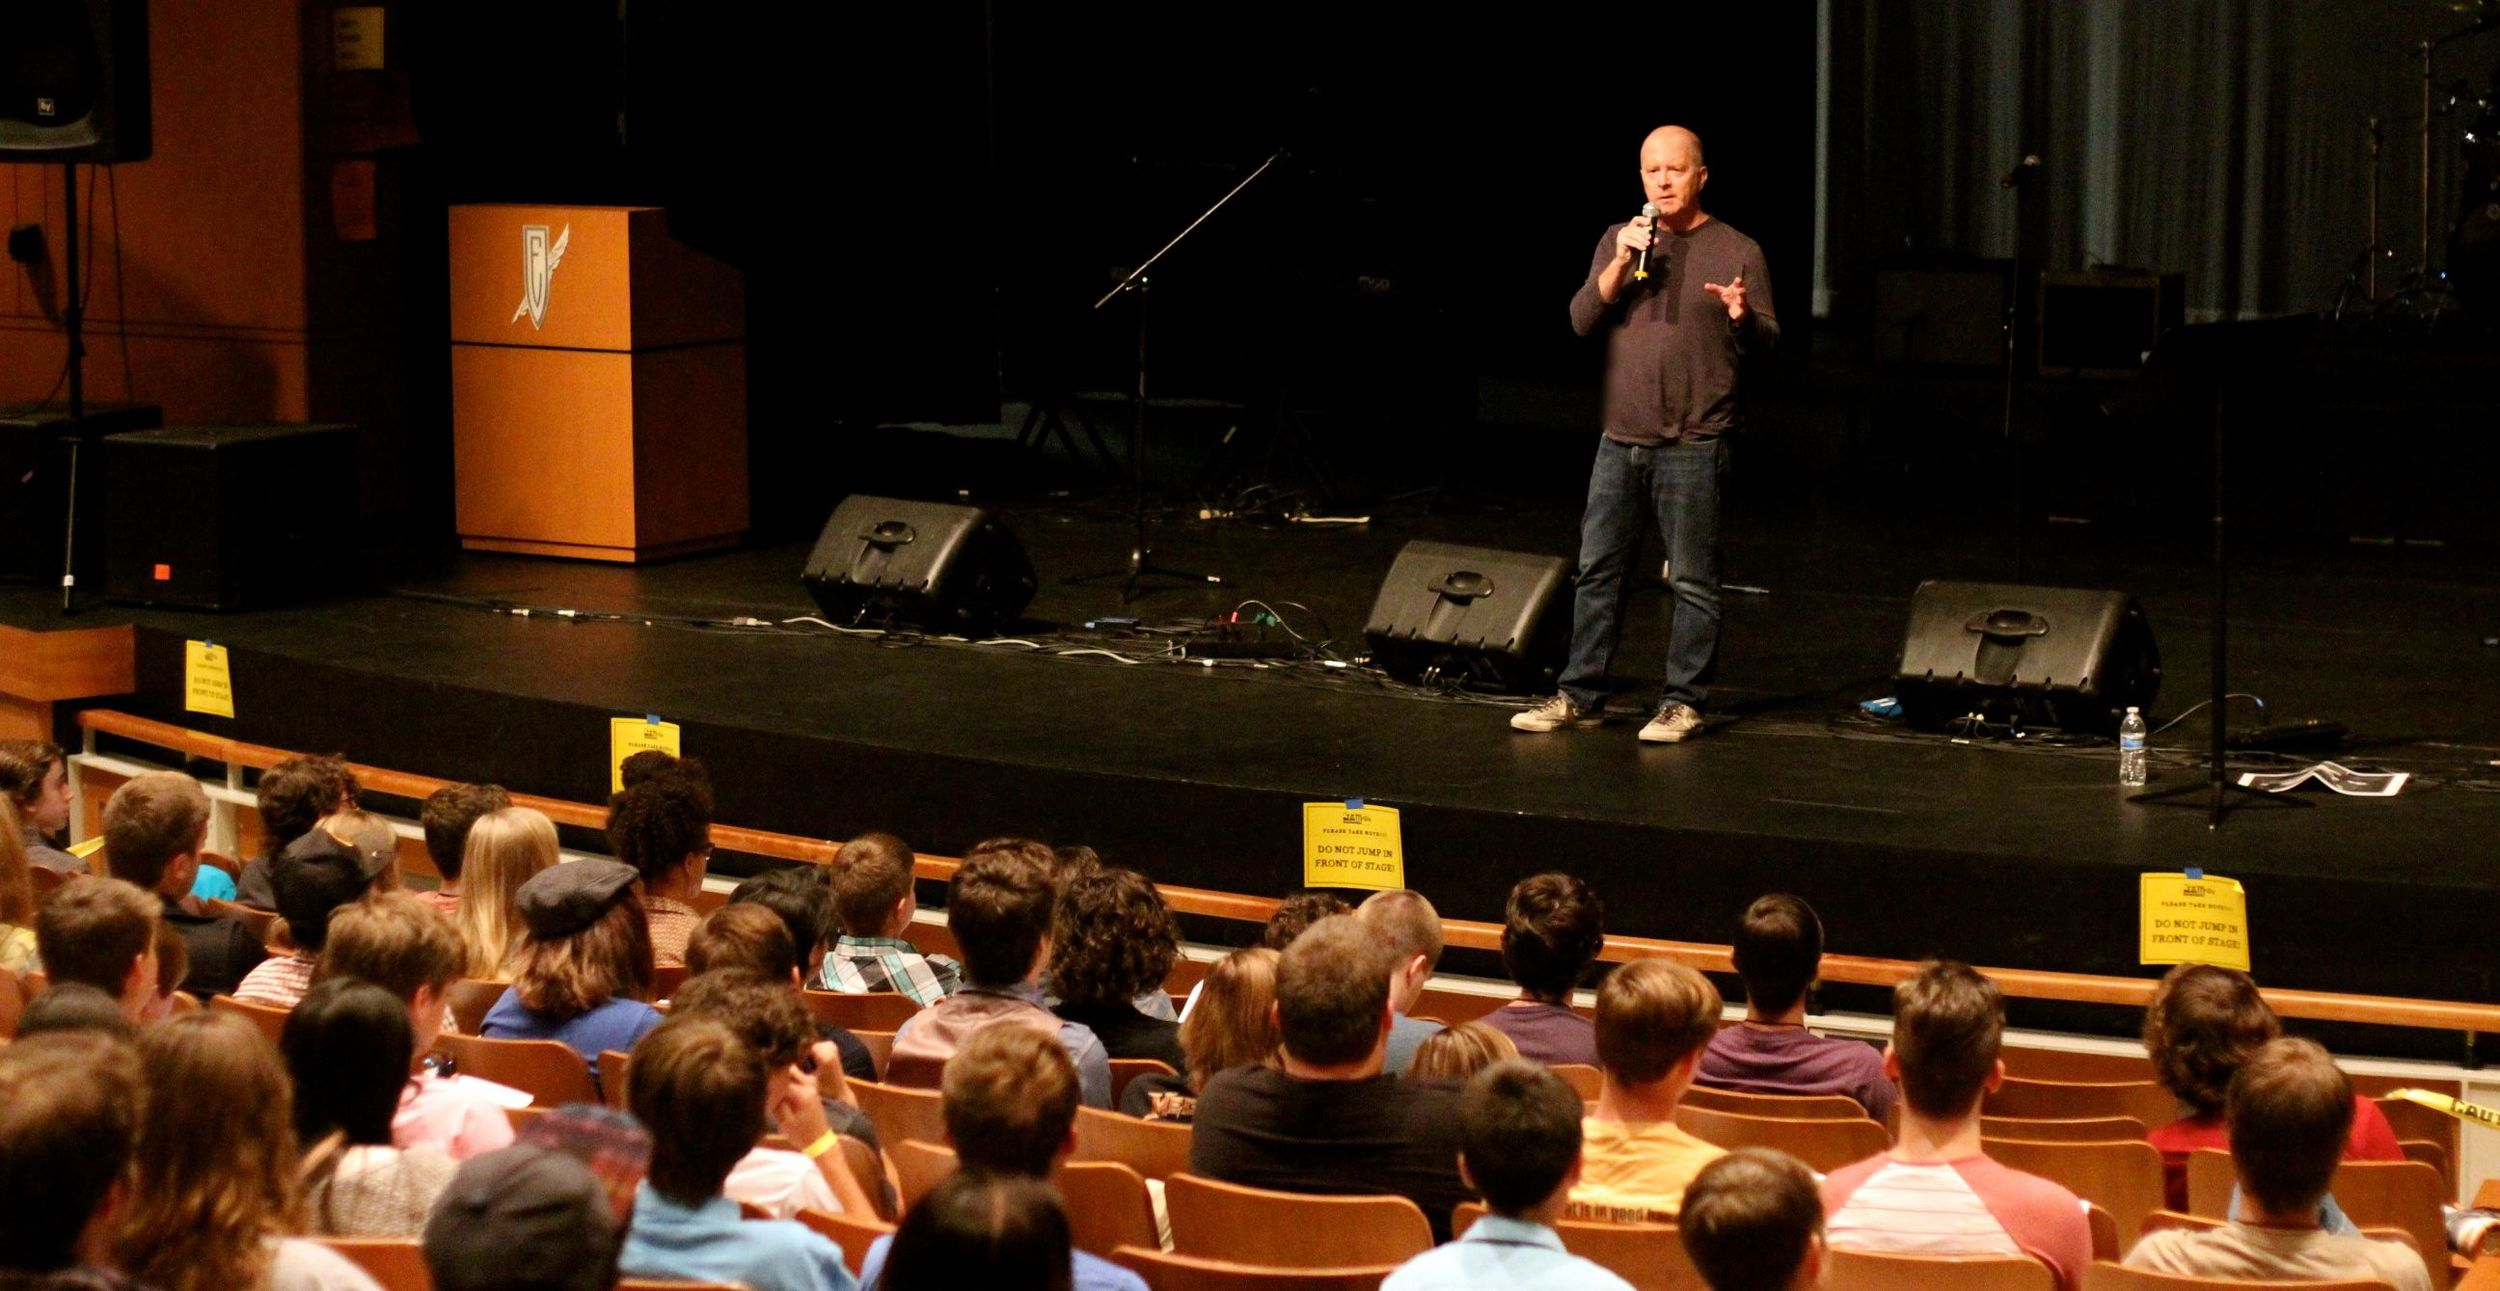 Mark's songwriting presentation at Ensworth, Franklin Tennessee